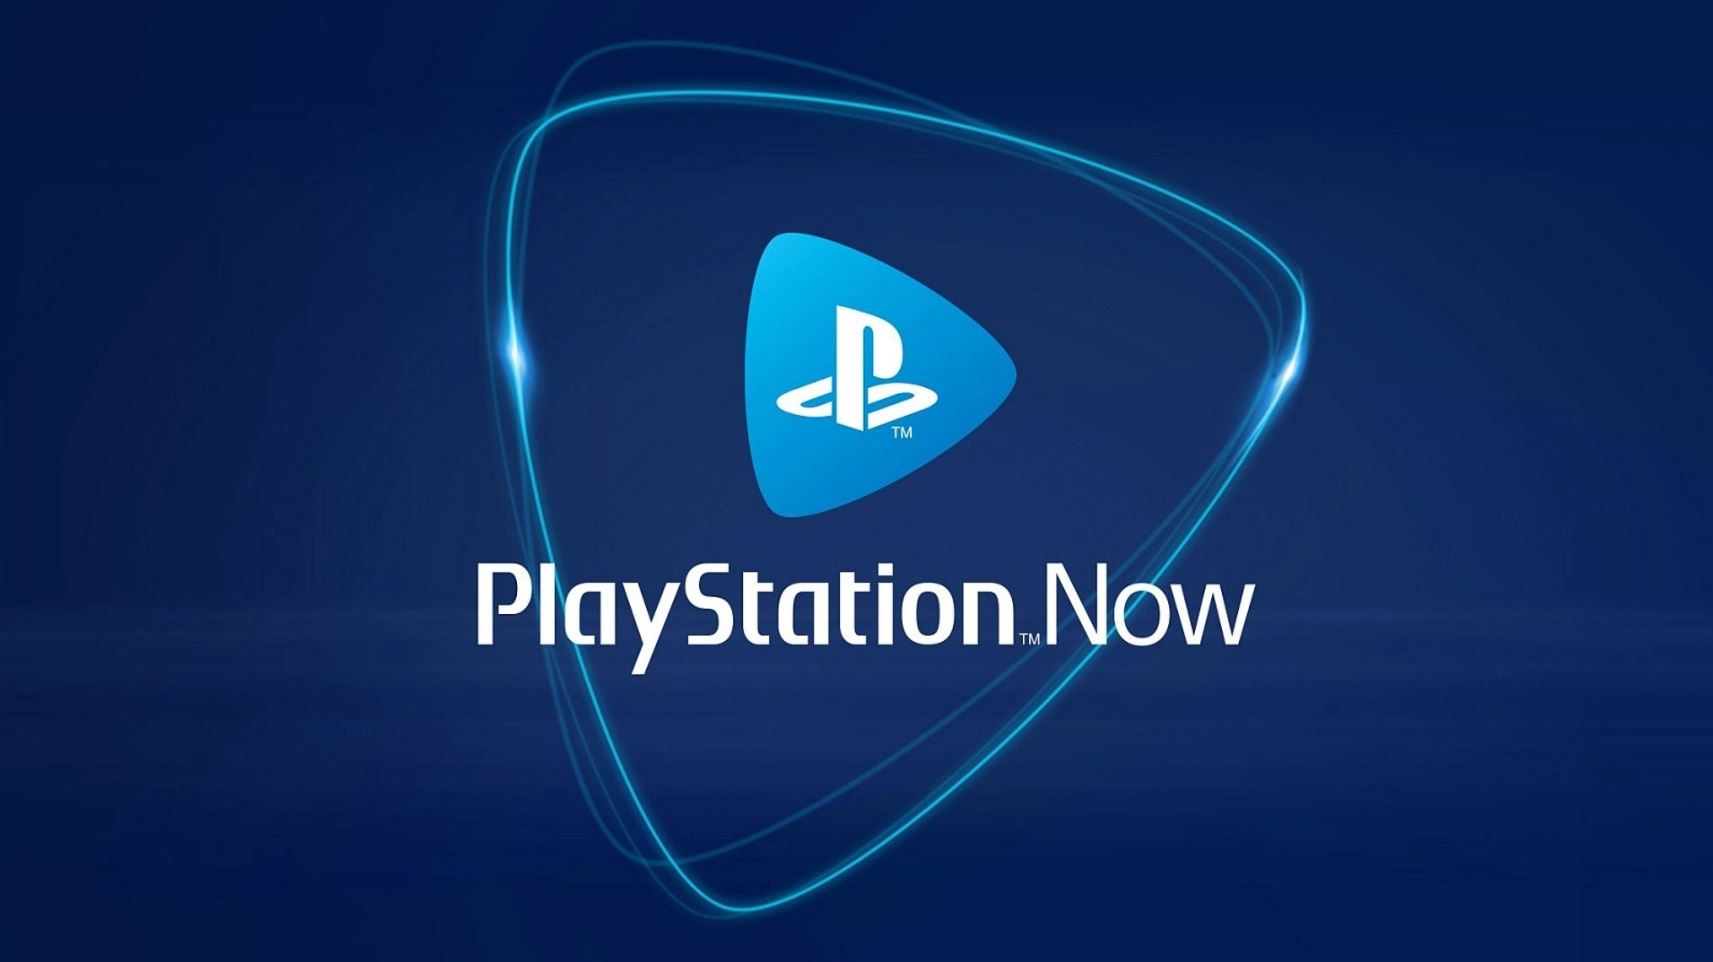 playstation-offers-up-1-month-of-playstation-now-for-just-1-promotion-ends-monday